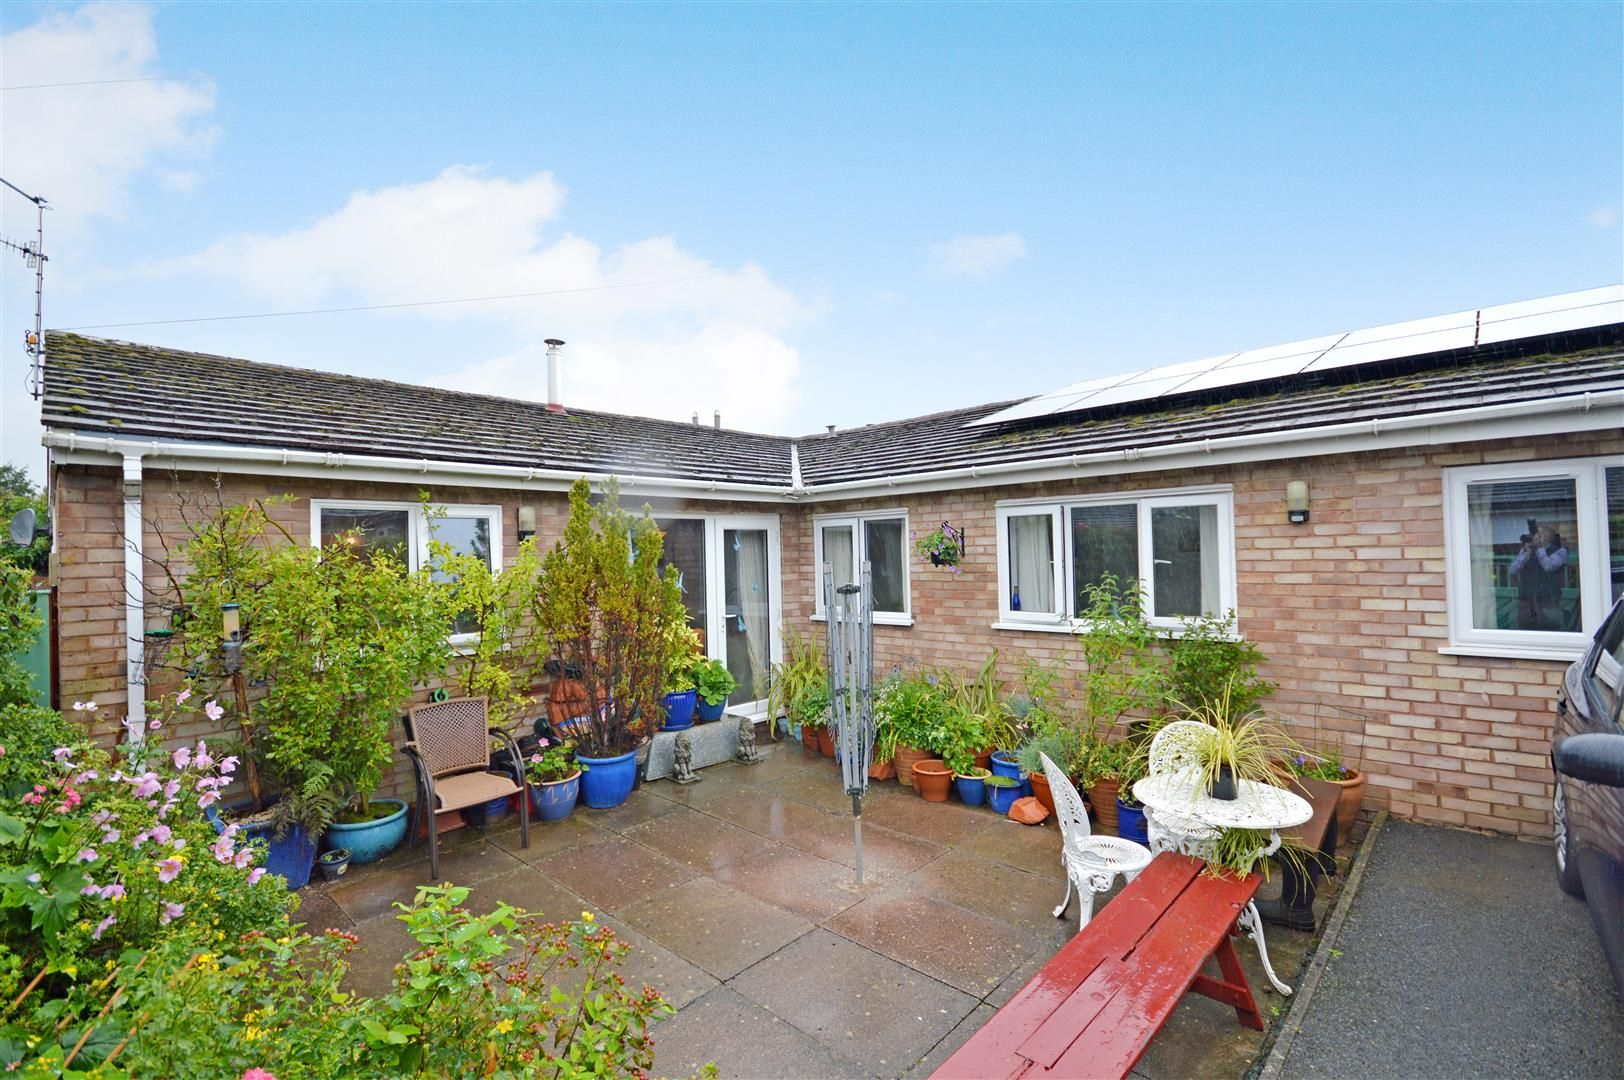 3 bed semi-detached bungalow for sale in Peterchurch  - Property Image 1